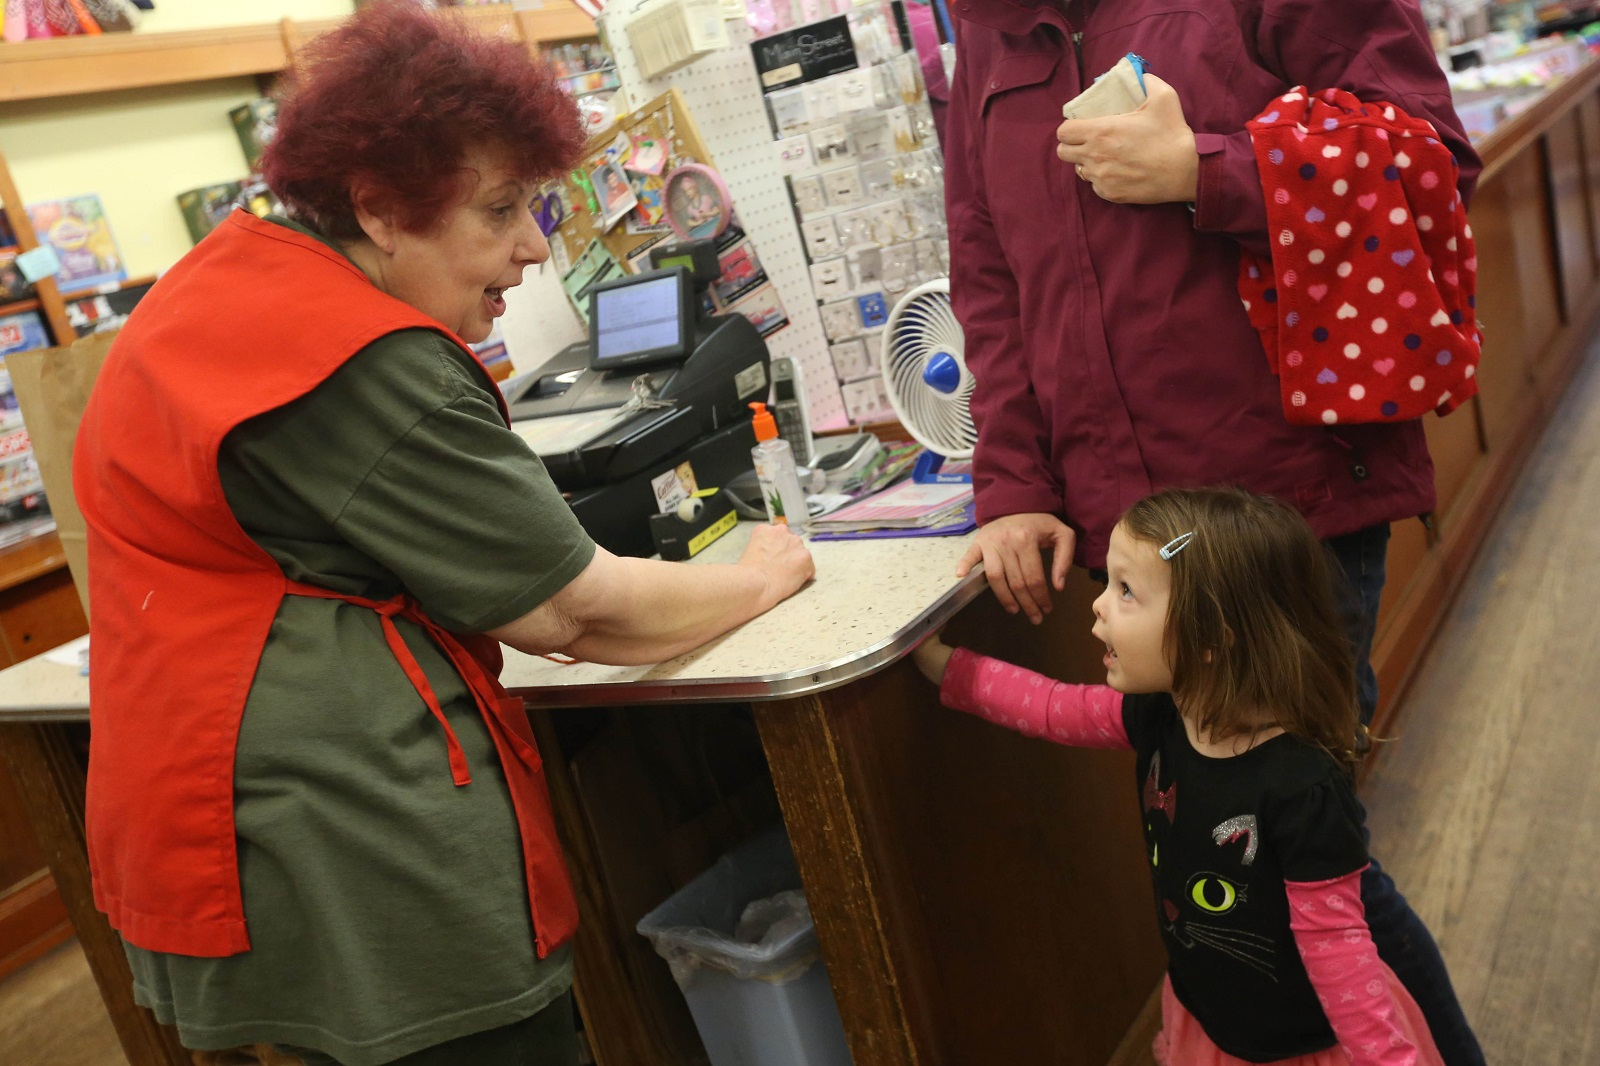 Clerk Sue Yoerk, left, listens to Lily Deriso, 2, of Strykersville, who has a lot to say. Behind Lily is her mom, Kate Deriso. (Sharon Cantillon/Buffalo News)